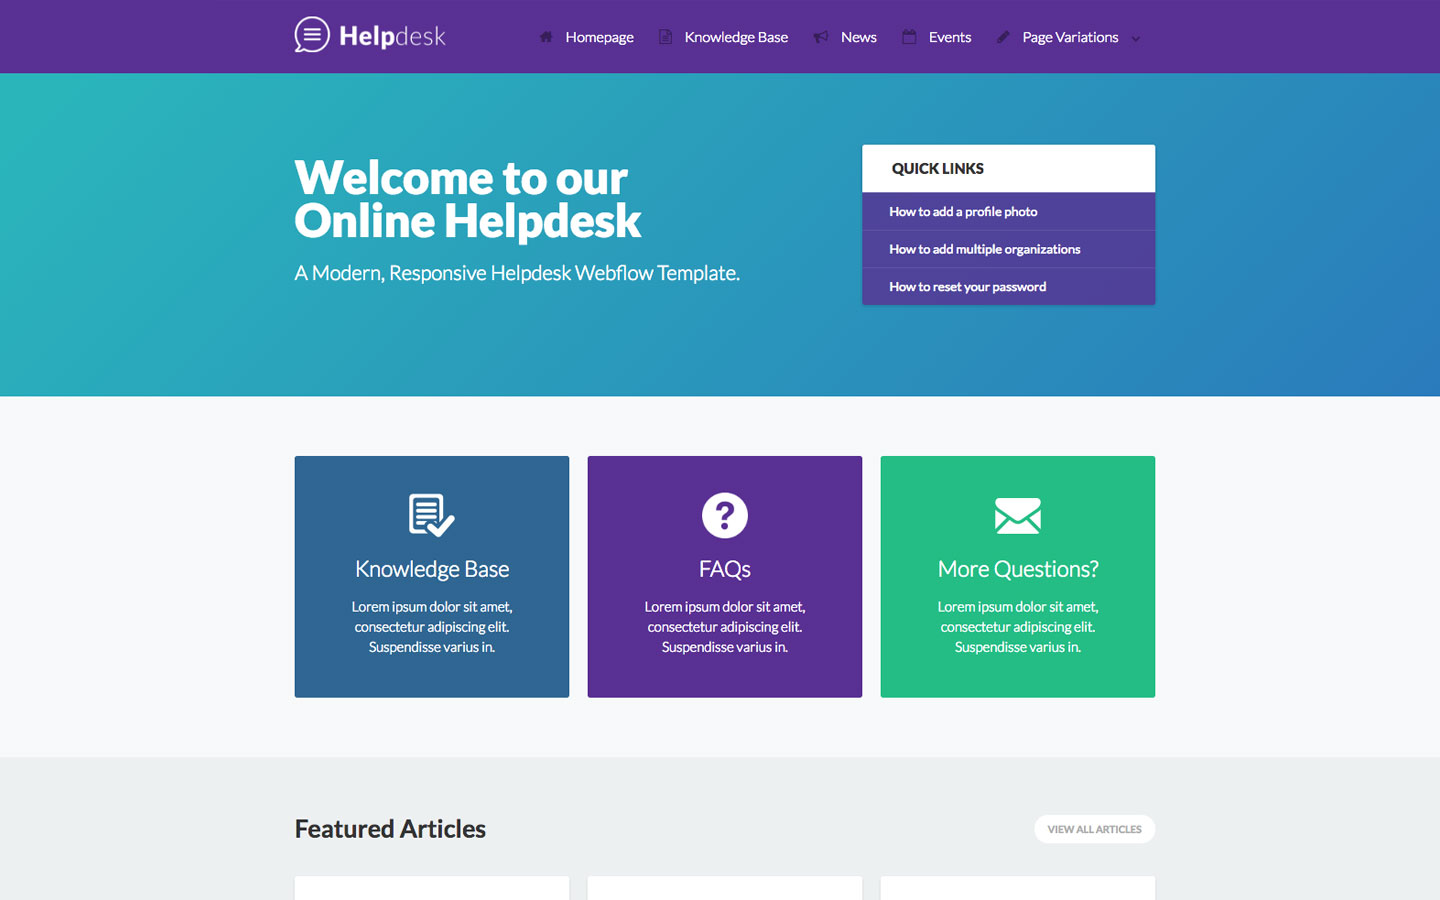 html product page template free - helpdesk documentation html5 responsive website template